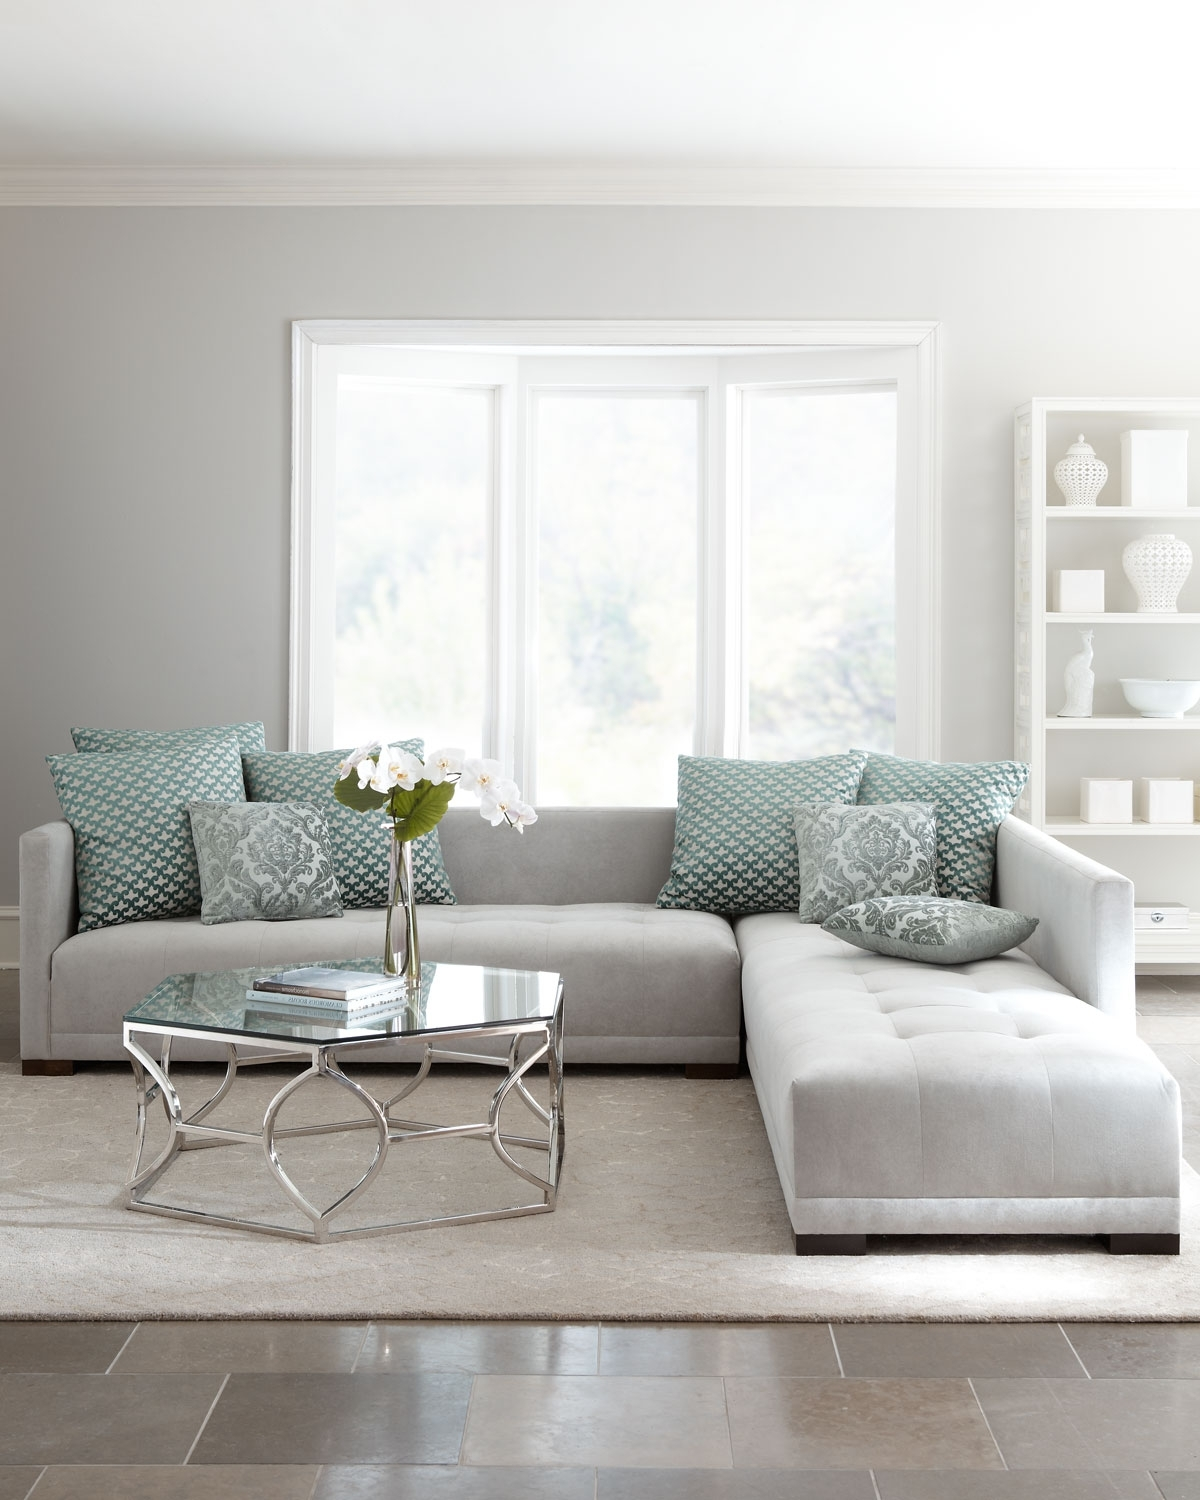 7 Ways To Use Duck Egg Blue To Spruce Up Your Living Room Decor 10+ Living Room Decorating Duck Egg Ideas